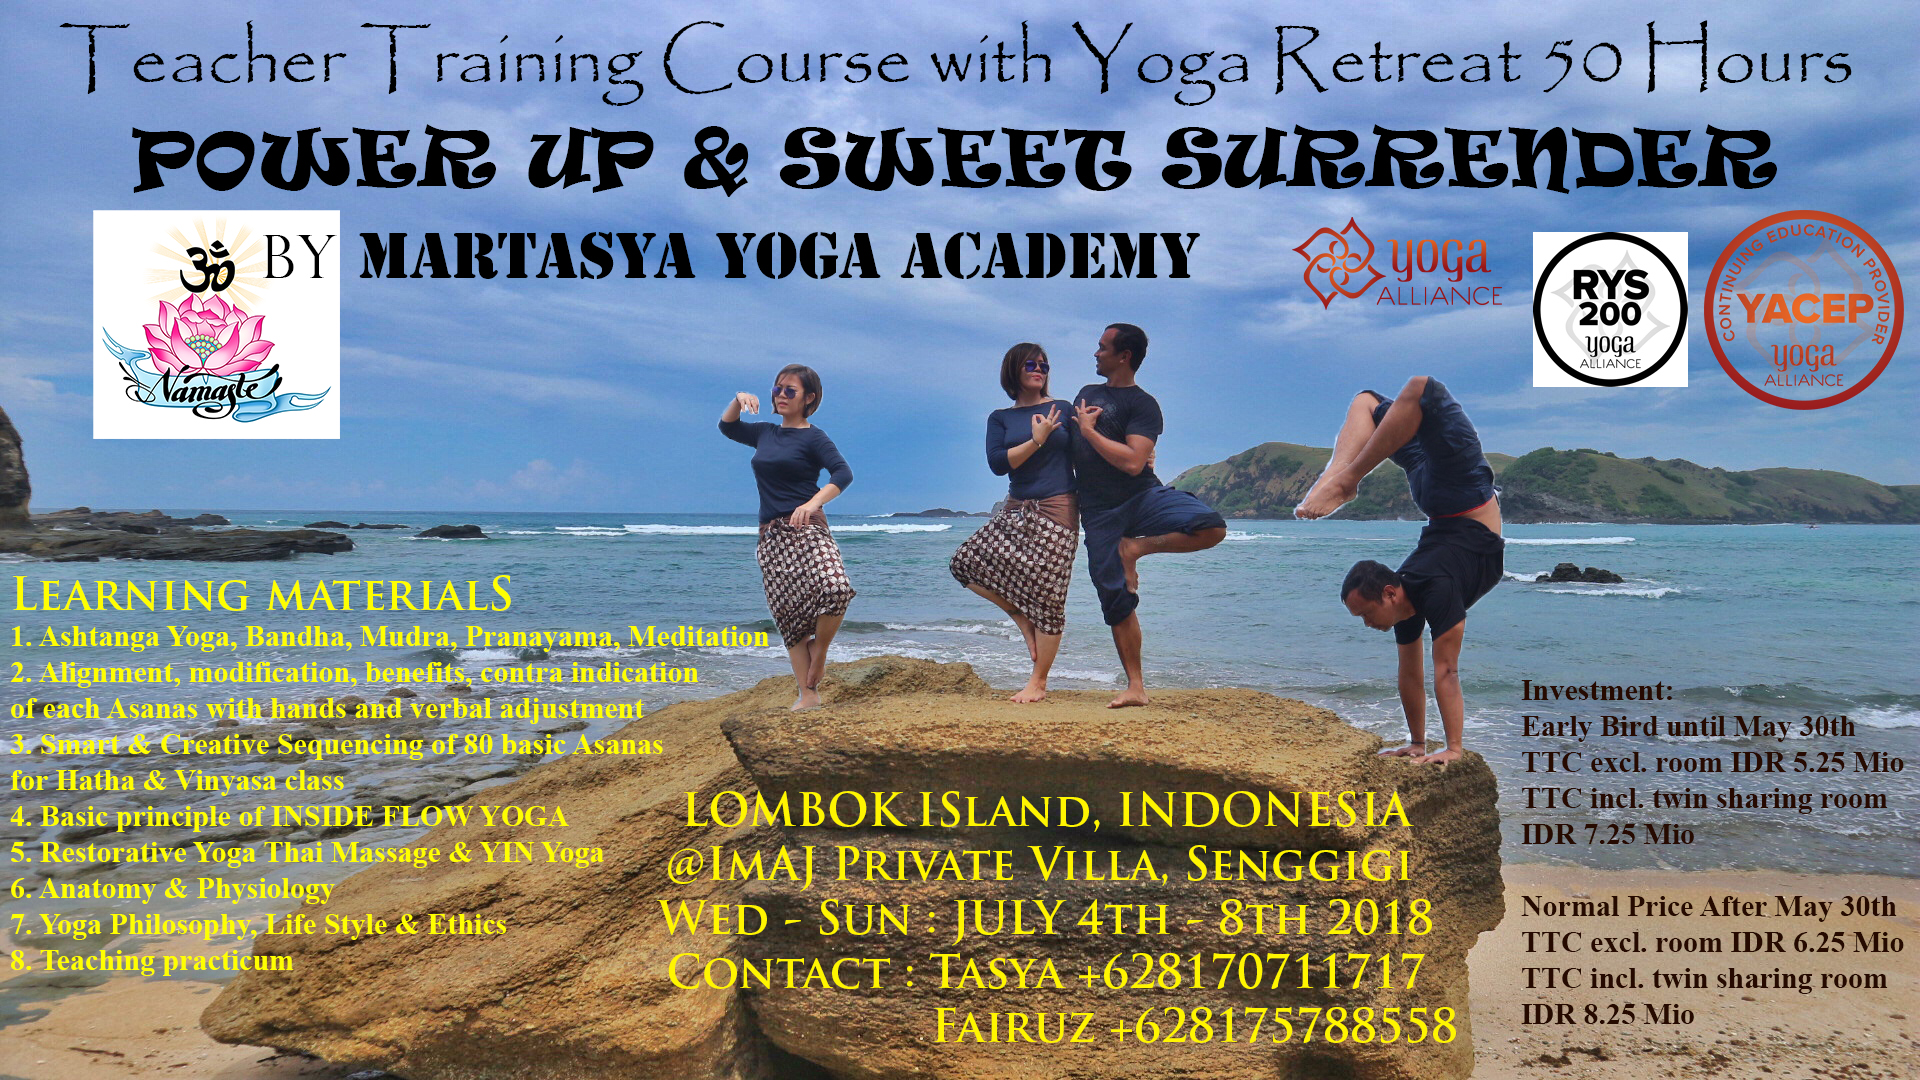 Teacher Training Course with 50-Hour Yoga Retreat to Lombok